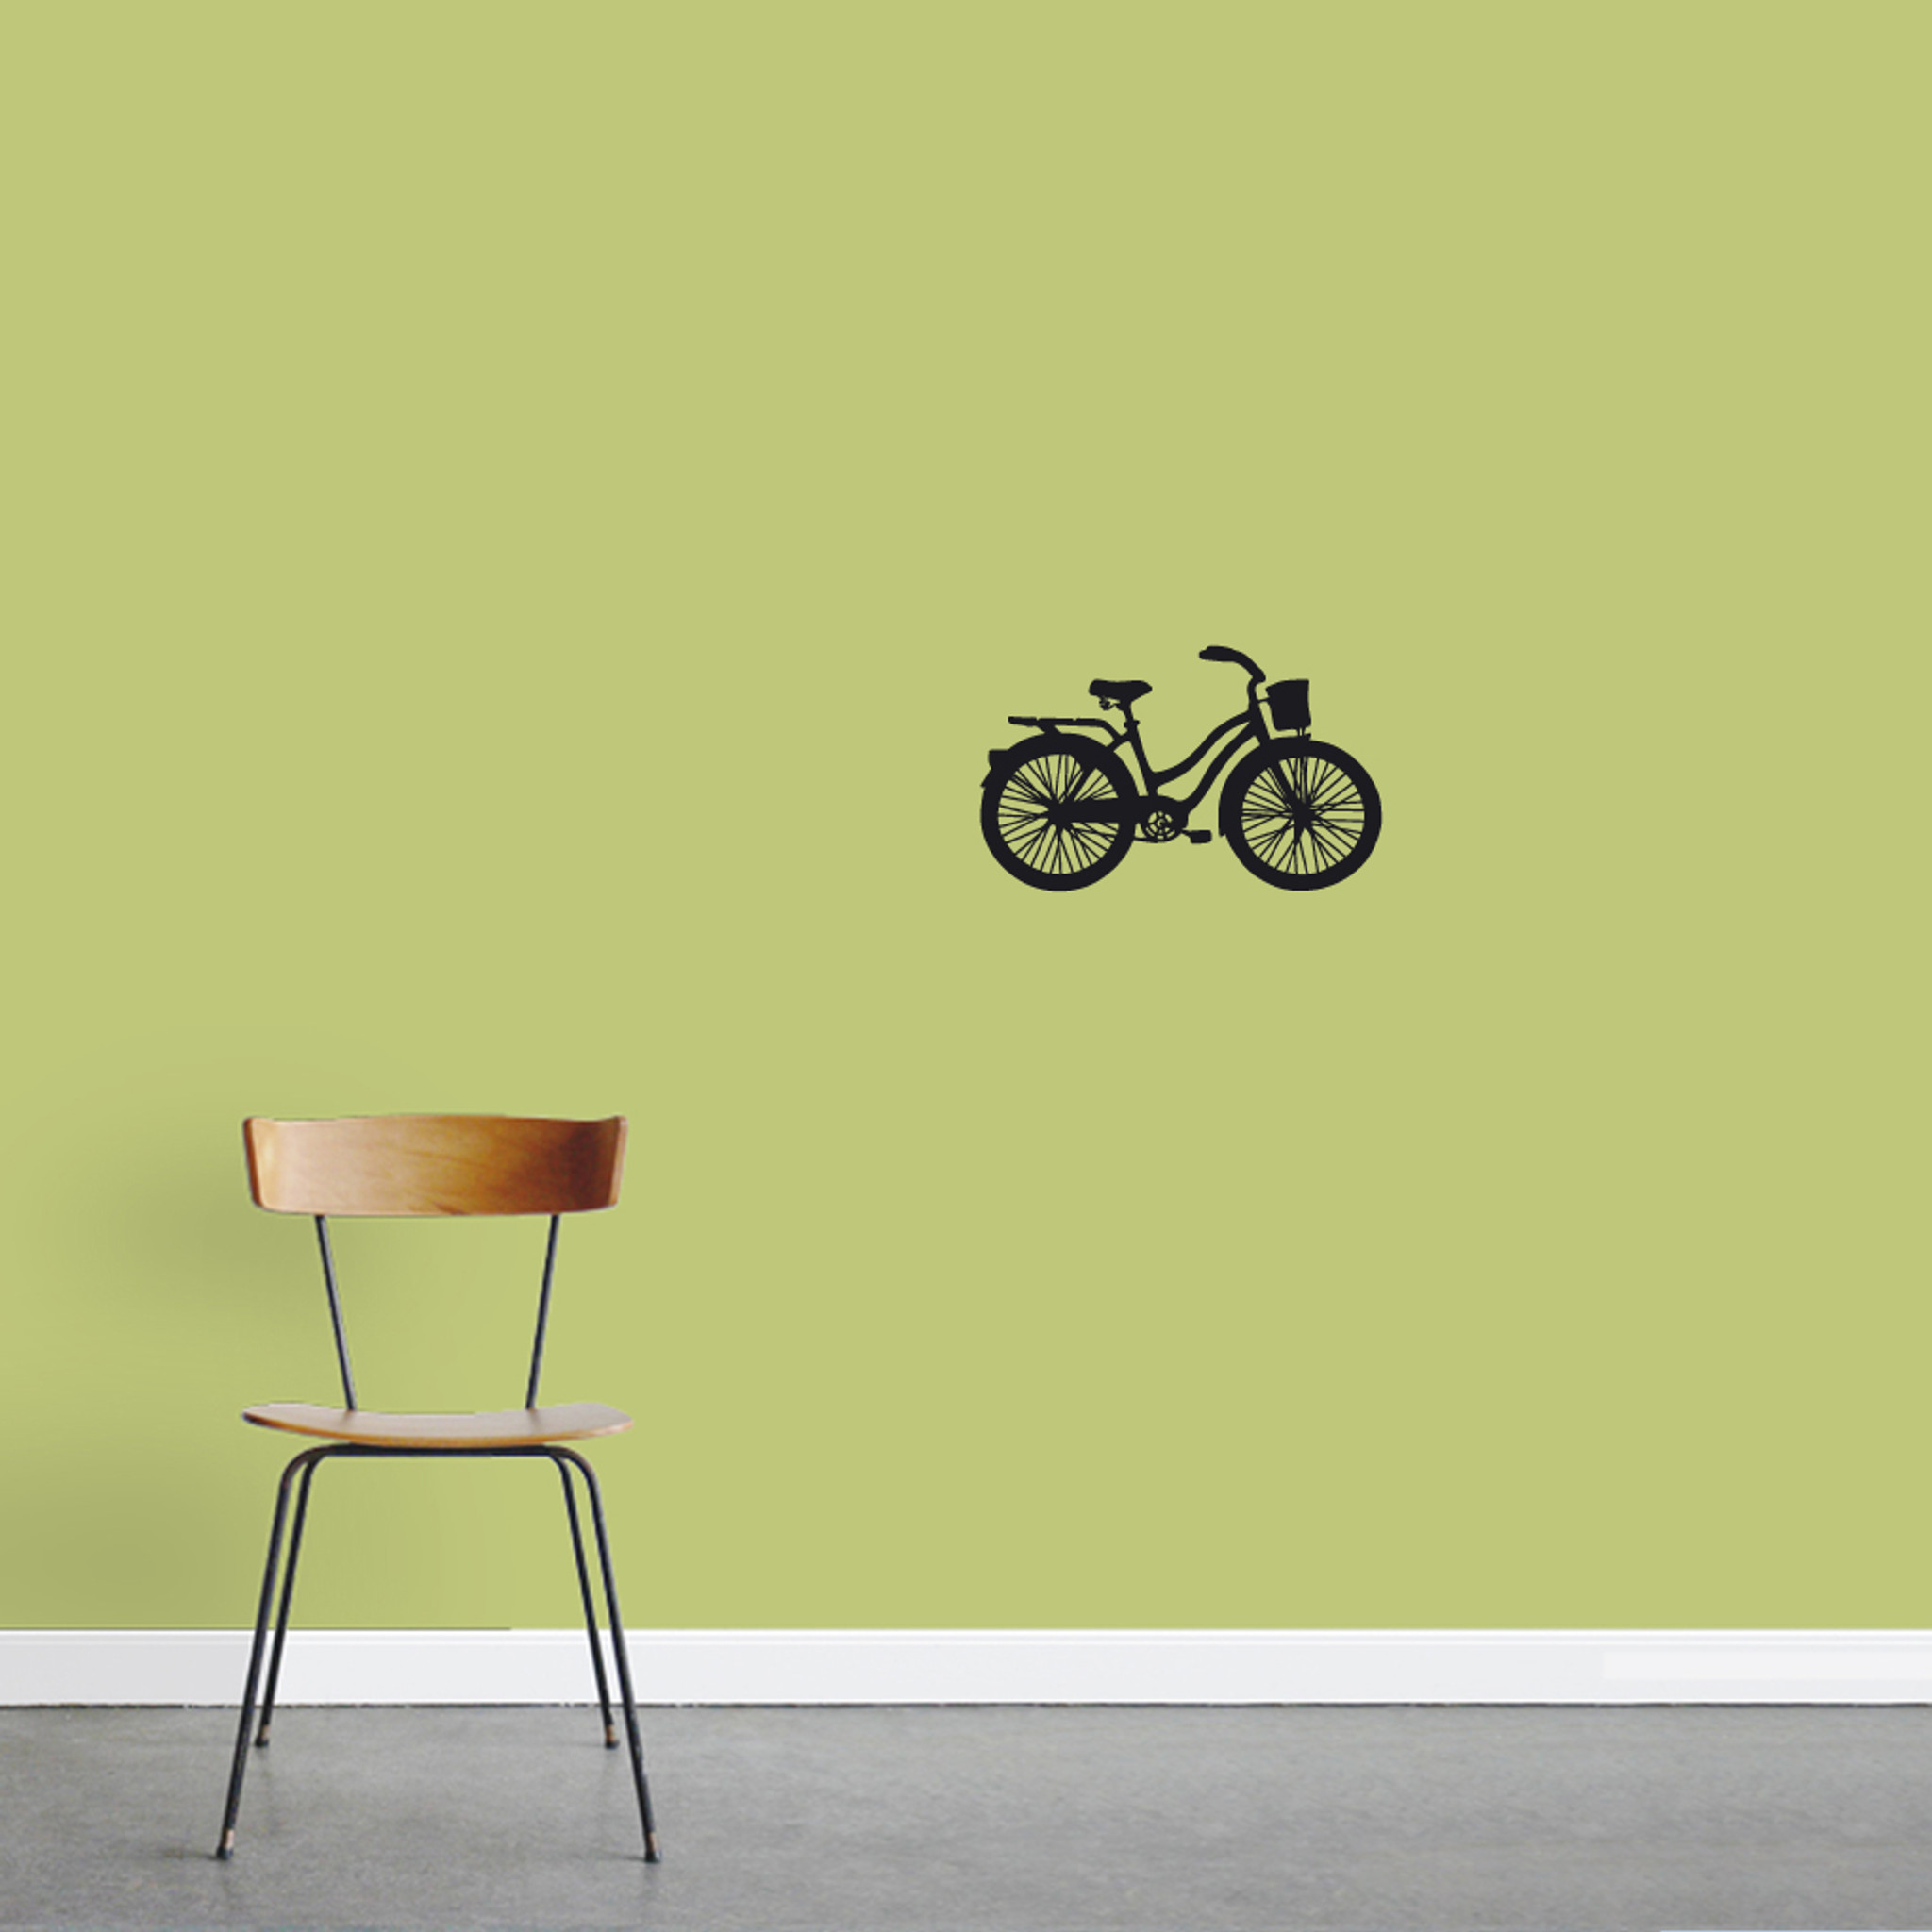 Vintage Cruiser Bike Wall Decals 18  wide x 11  tall S≤ Image : bicycle wall decal - www.pureclipart.com